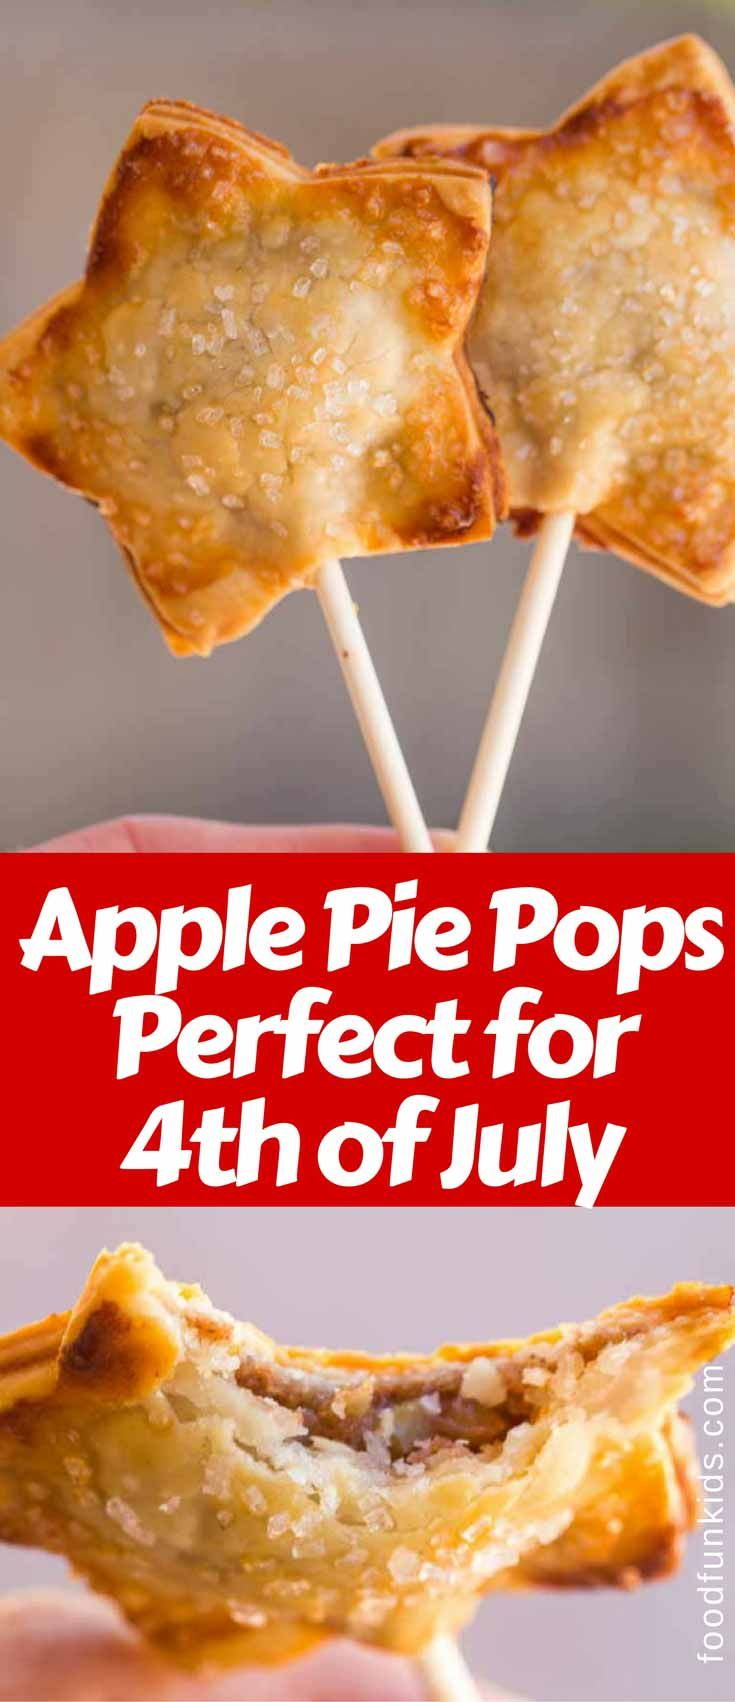 Apple Pie Pops are a quick and easy dessert you can make for your kids or for a fun 4th of July party. via @foodfunkids